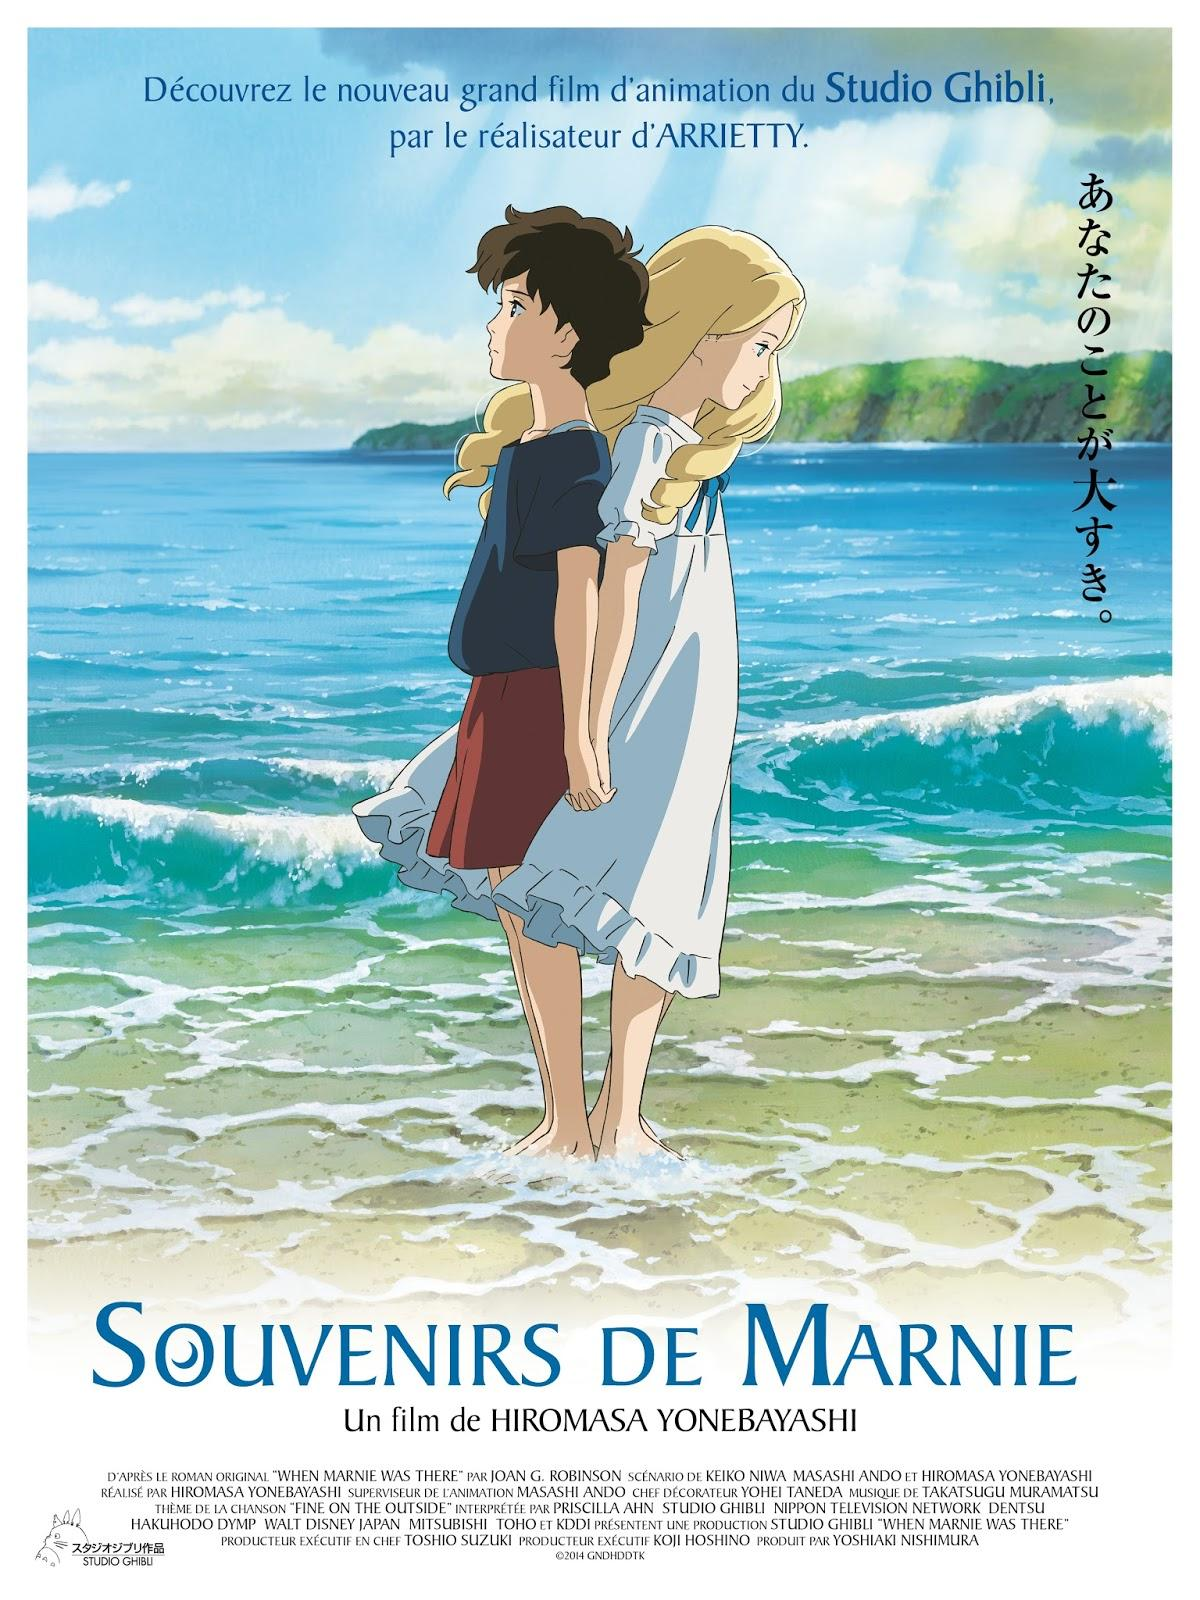 CINEMA: [INVITATIONS] Souvenirs de Marnie (2014), la nostalgie de Ghibli / When Marnie Was There (2014), the nostalgia for Ghibli - #DisneySocialClub